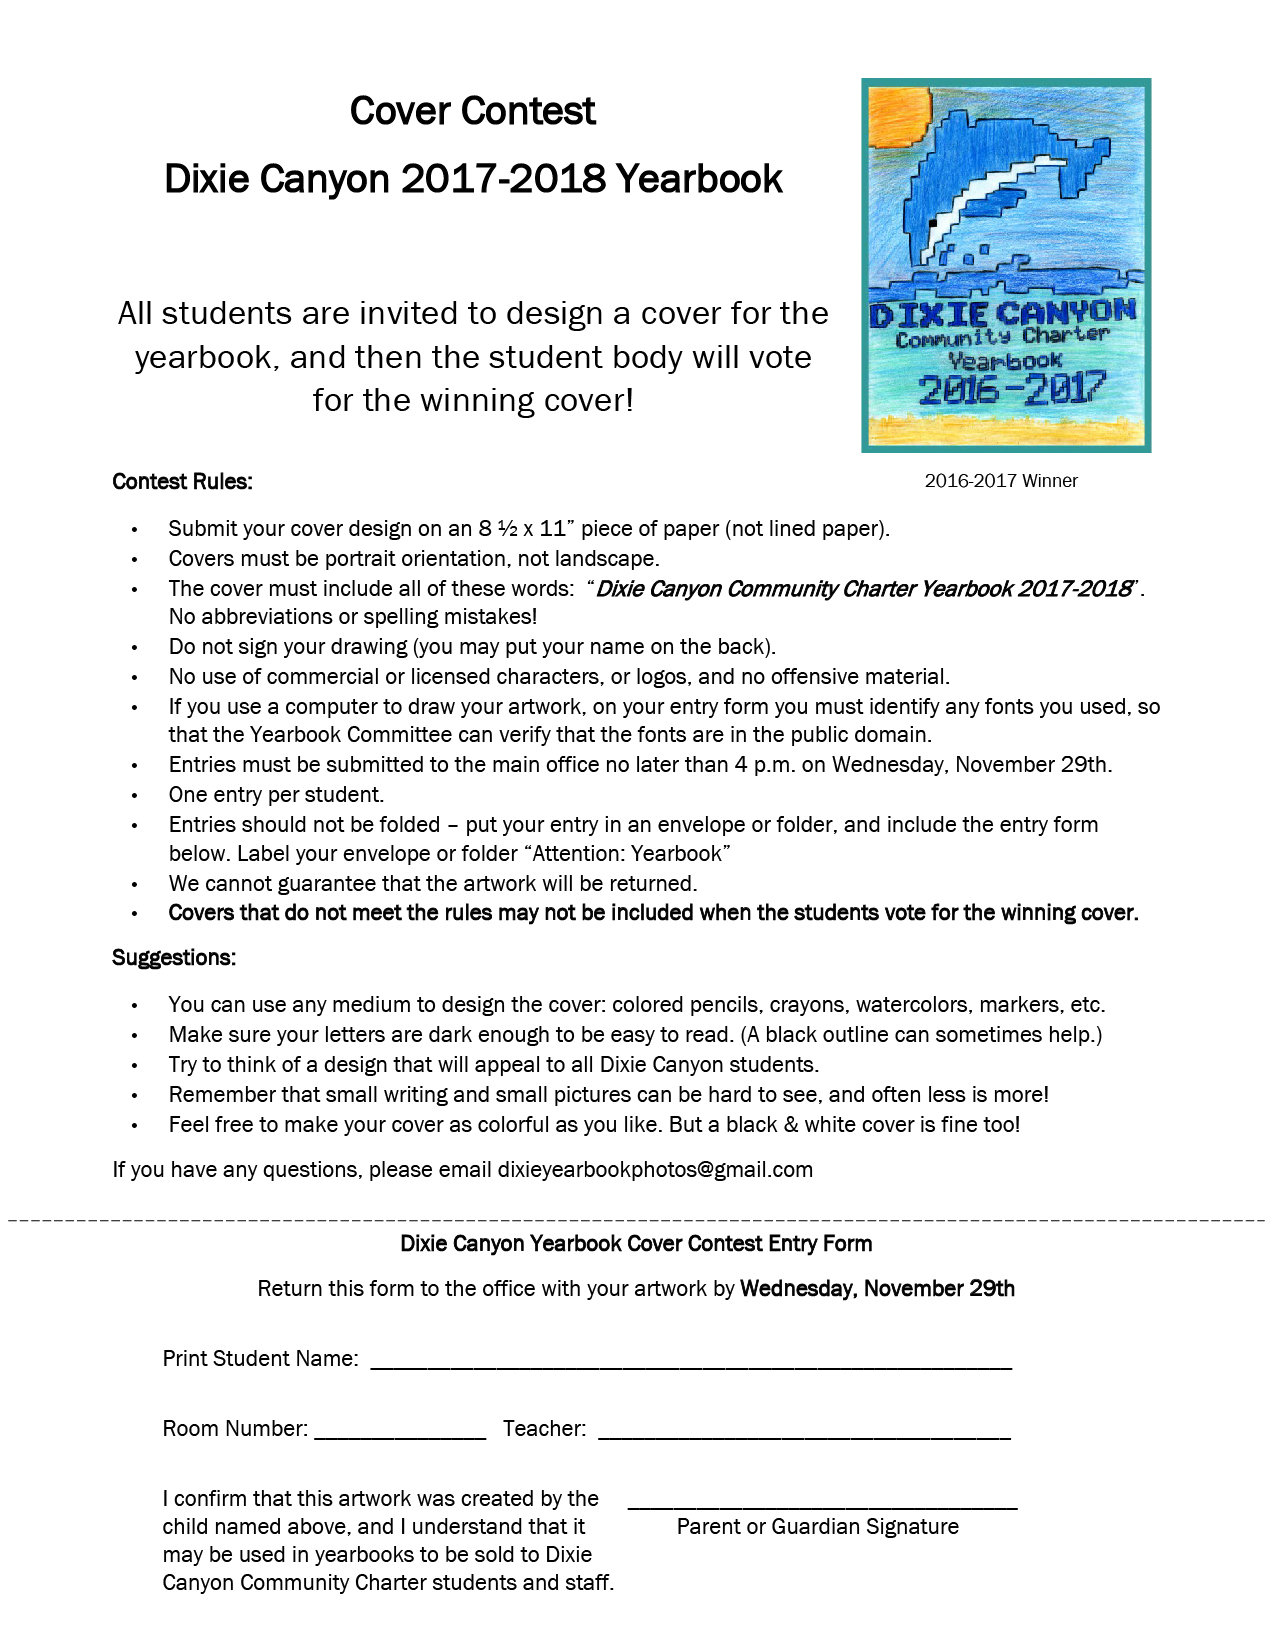 Yearbook Contest Entry Form 2017-2018 - Dixie Canyon Community ...